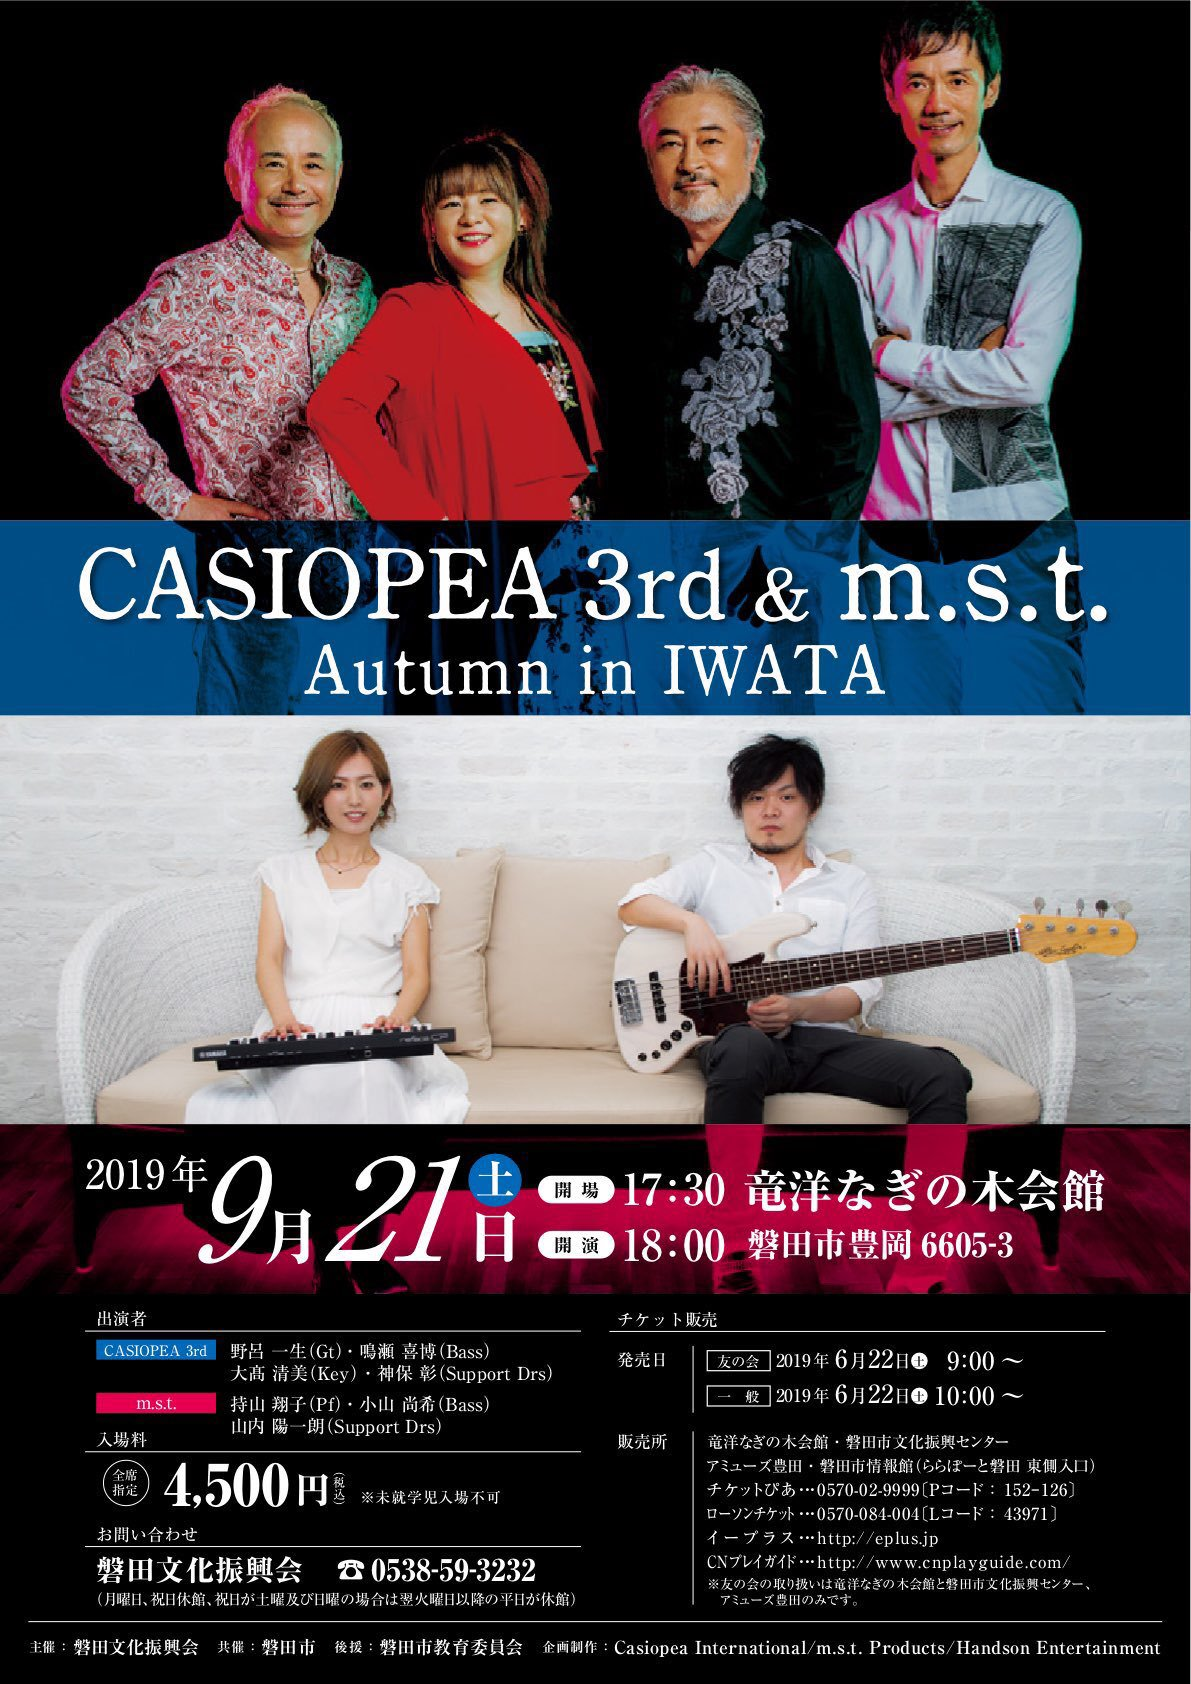 【CASIOPEA 3rd & m.s.t. Autumn in IWATA】チケット発売開始しました。